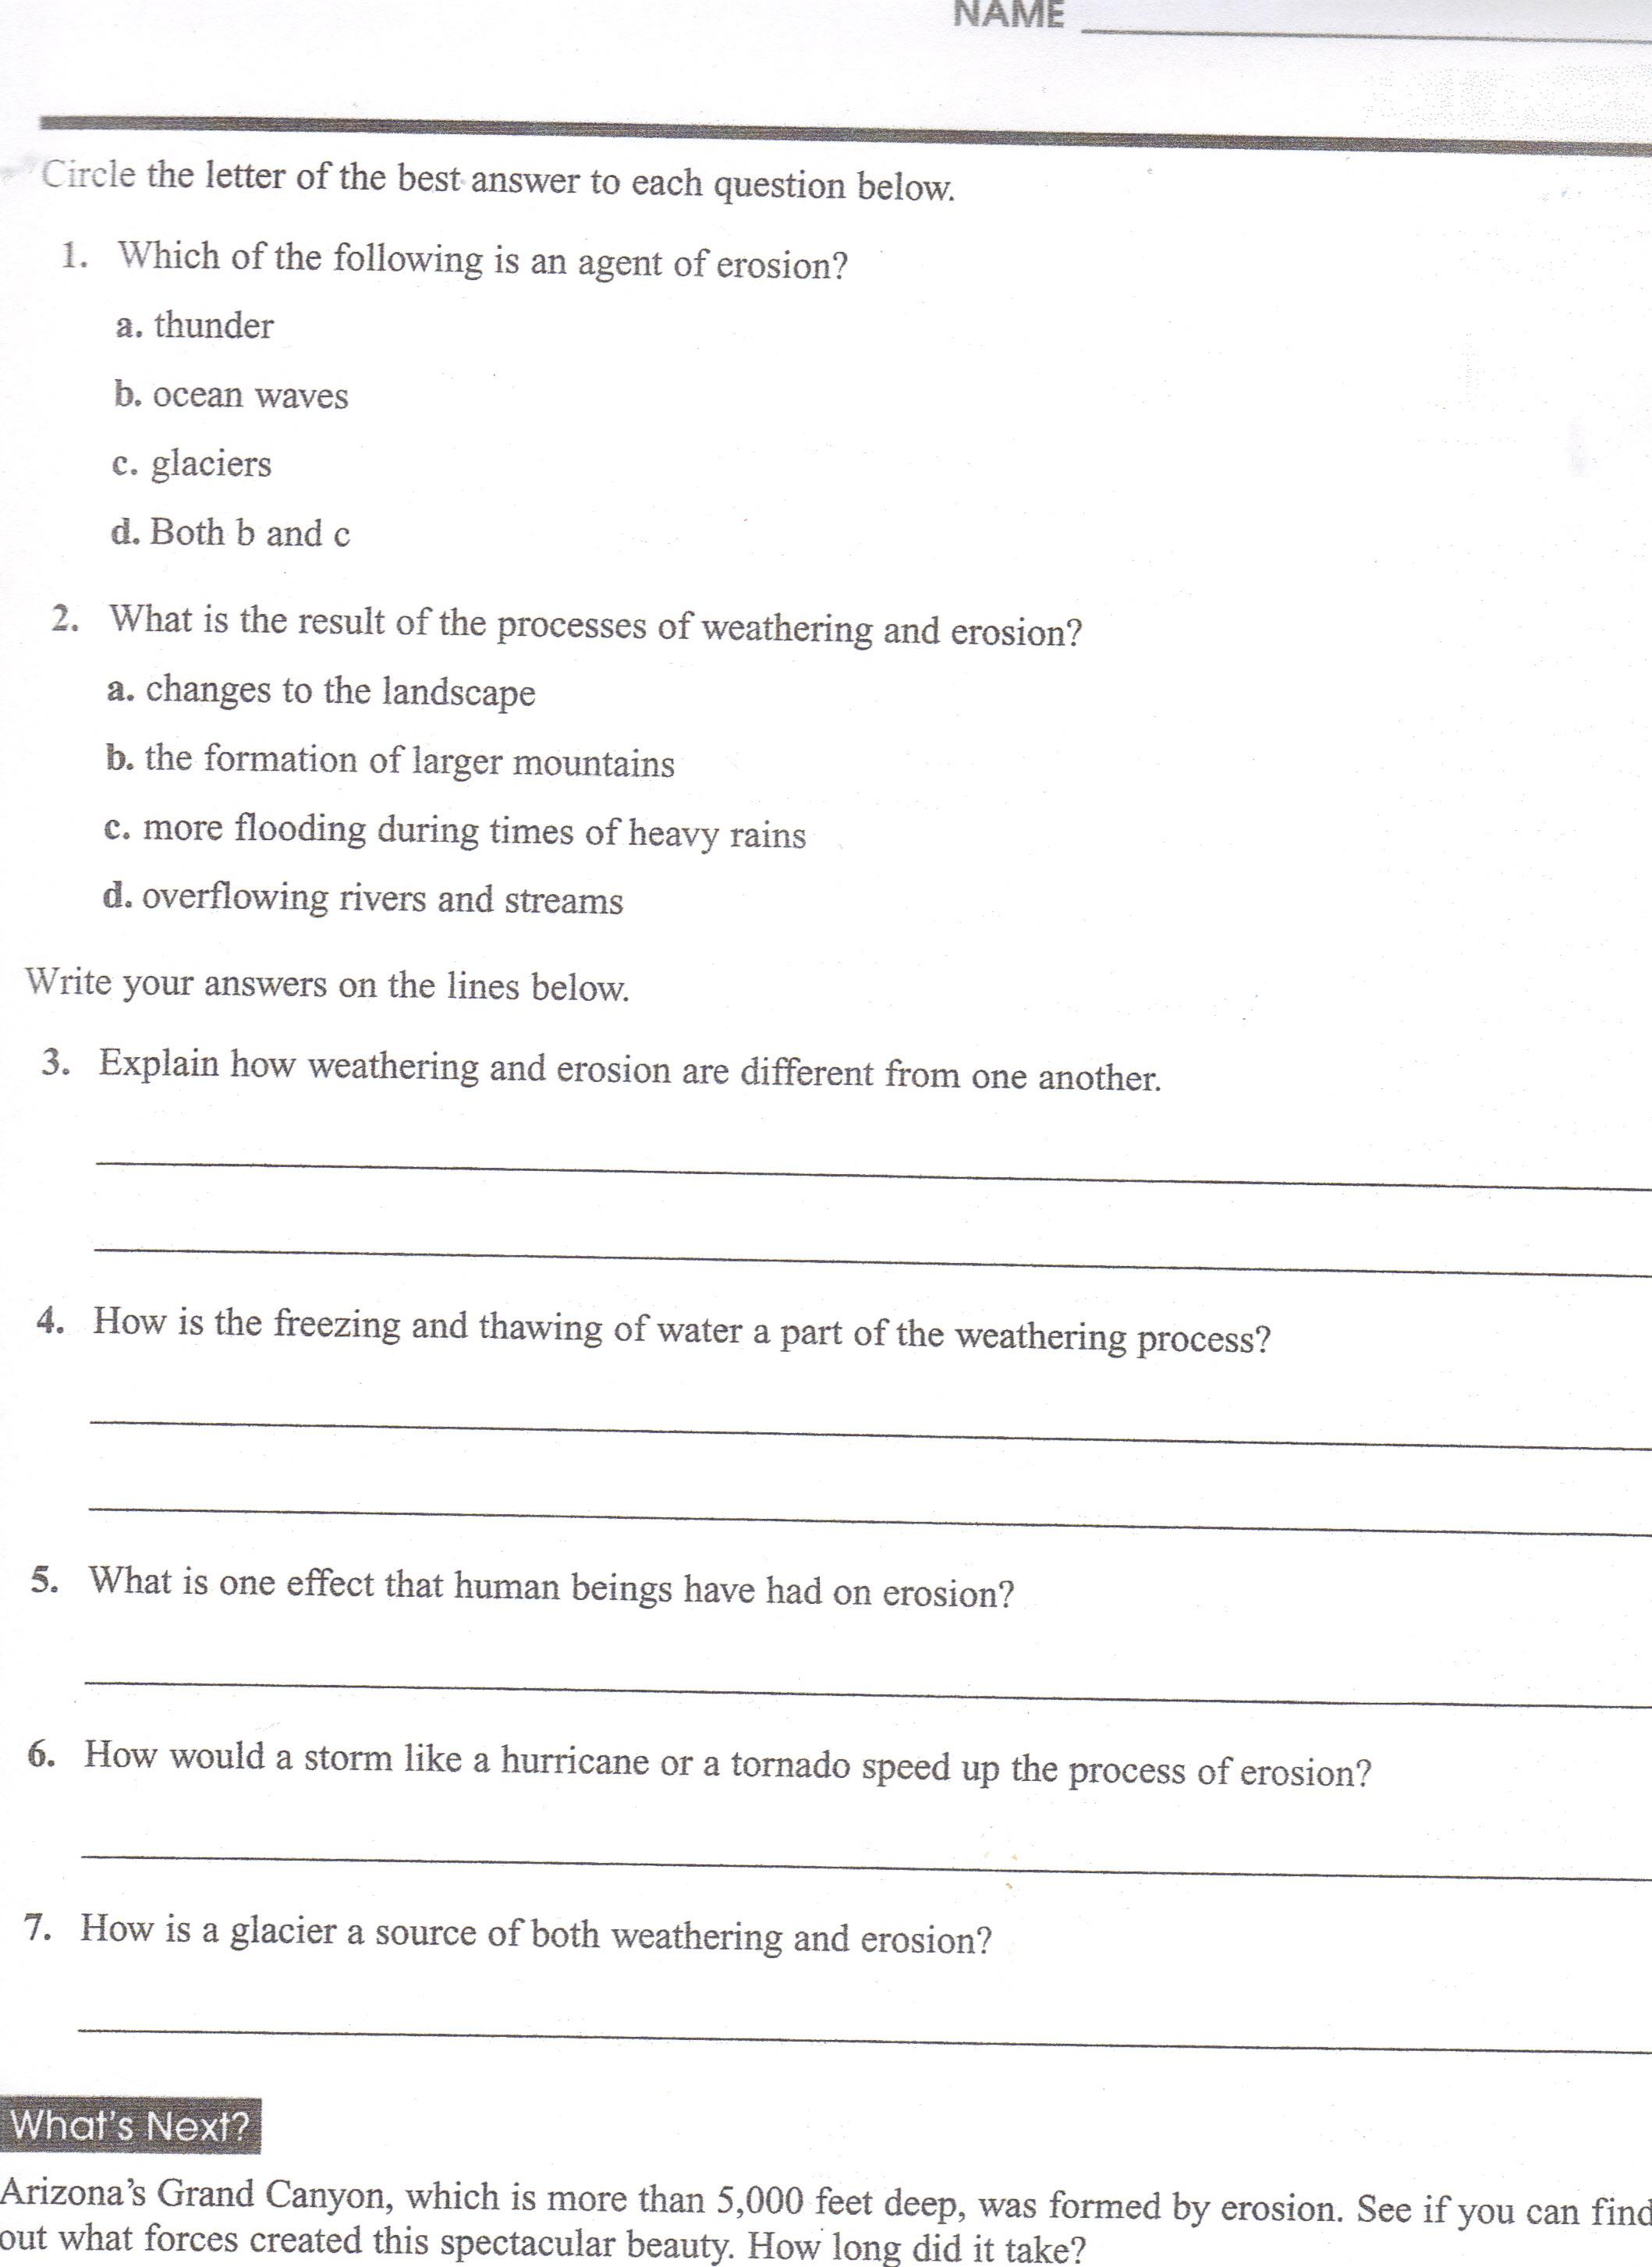 Free Worksheet Landform Worksheets ditoddfifthgrade landform worksheets break it down questions understanding landforms part 1